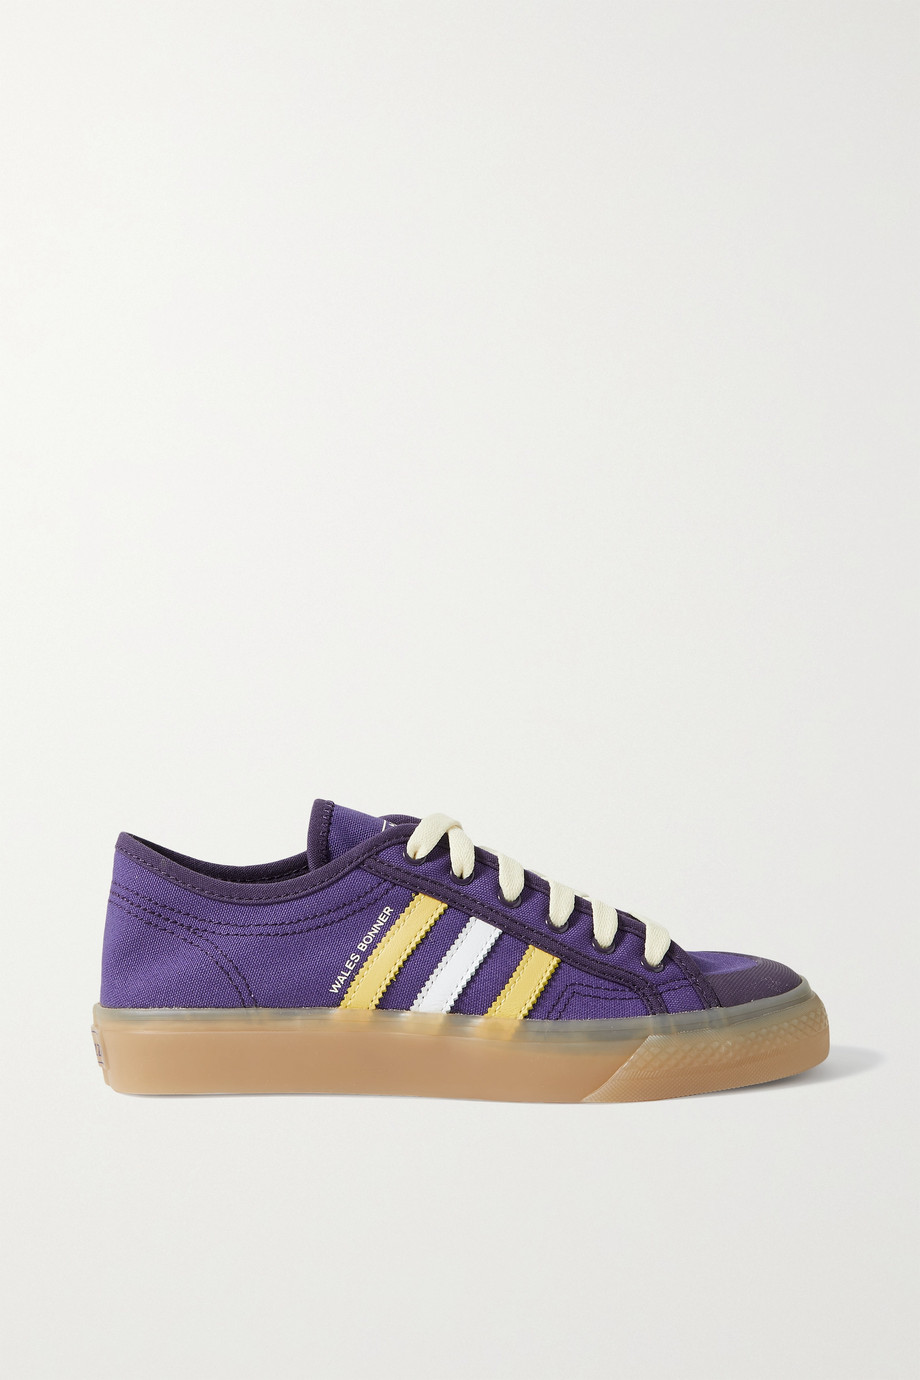 ADIDAS ORIGINALS + Wales Bonner Nizza leather-trimmed canvas sneakers